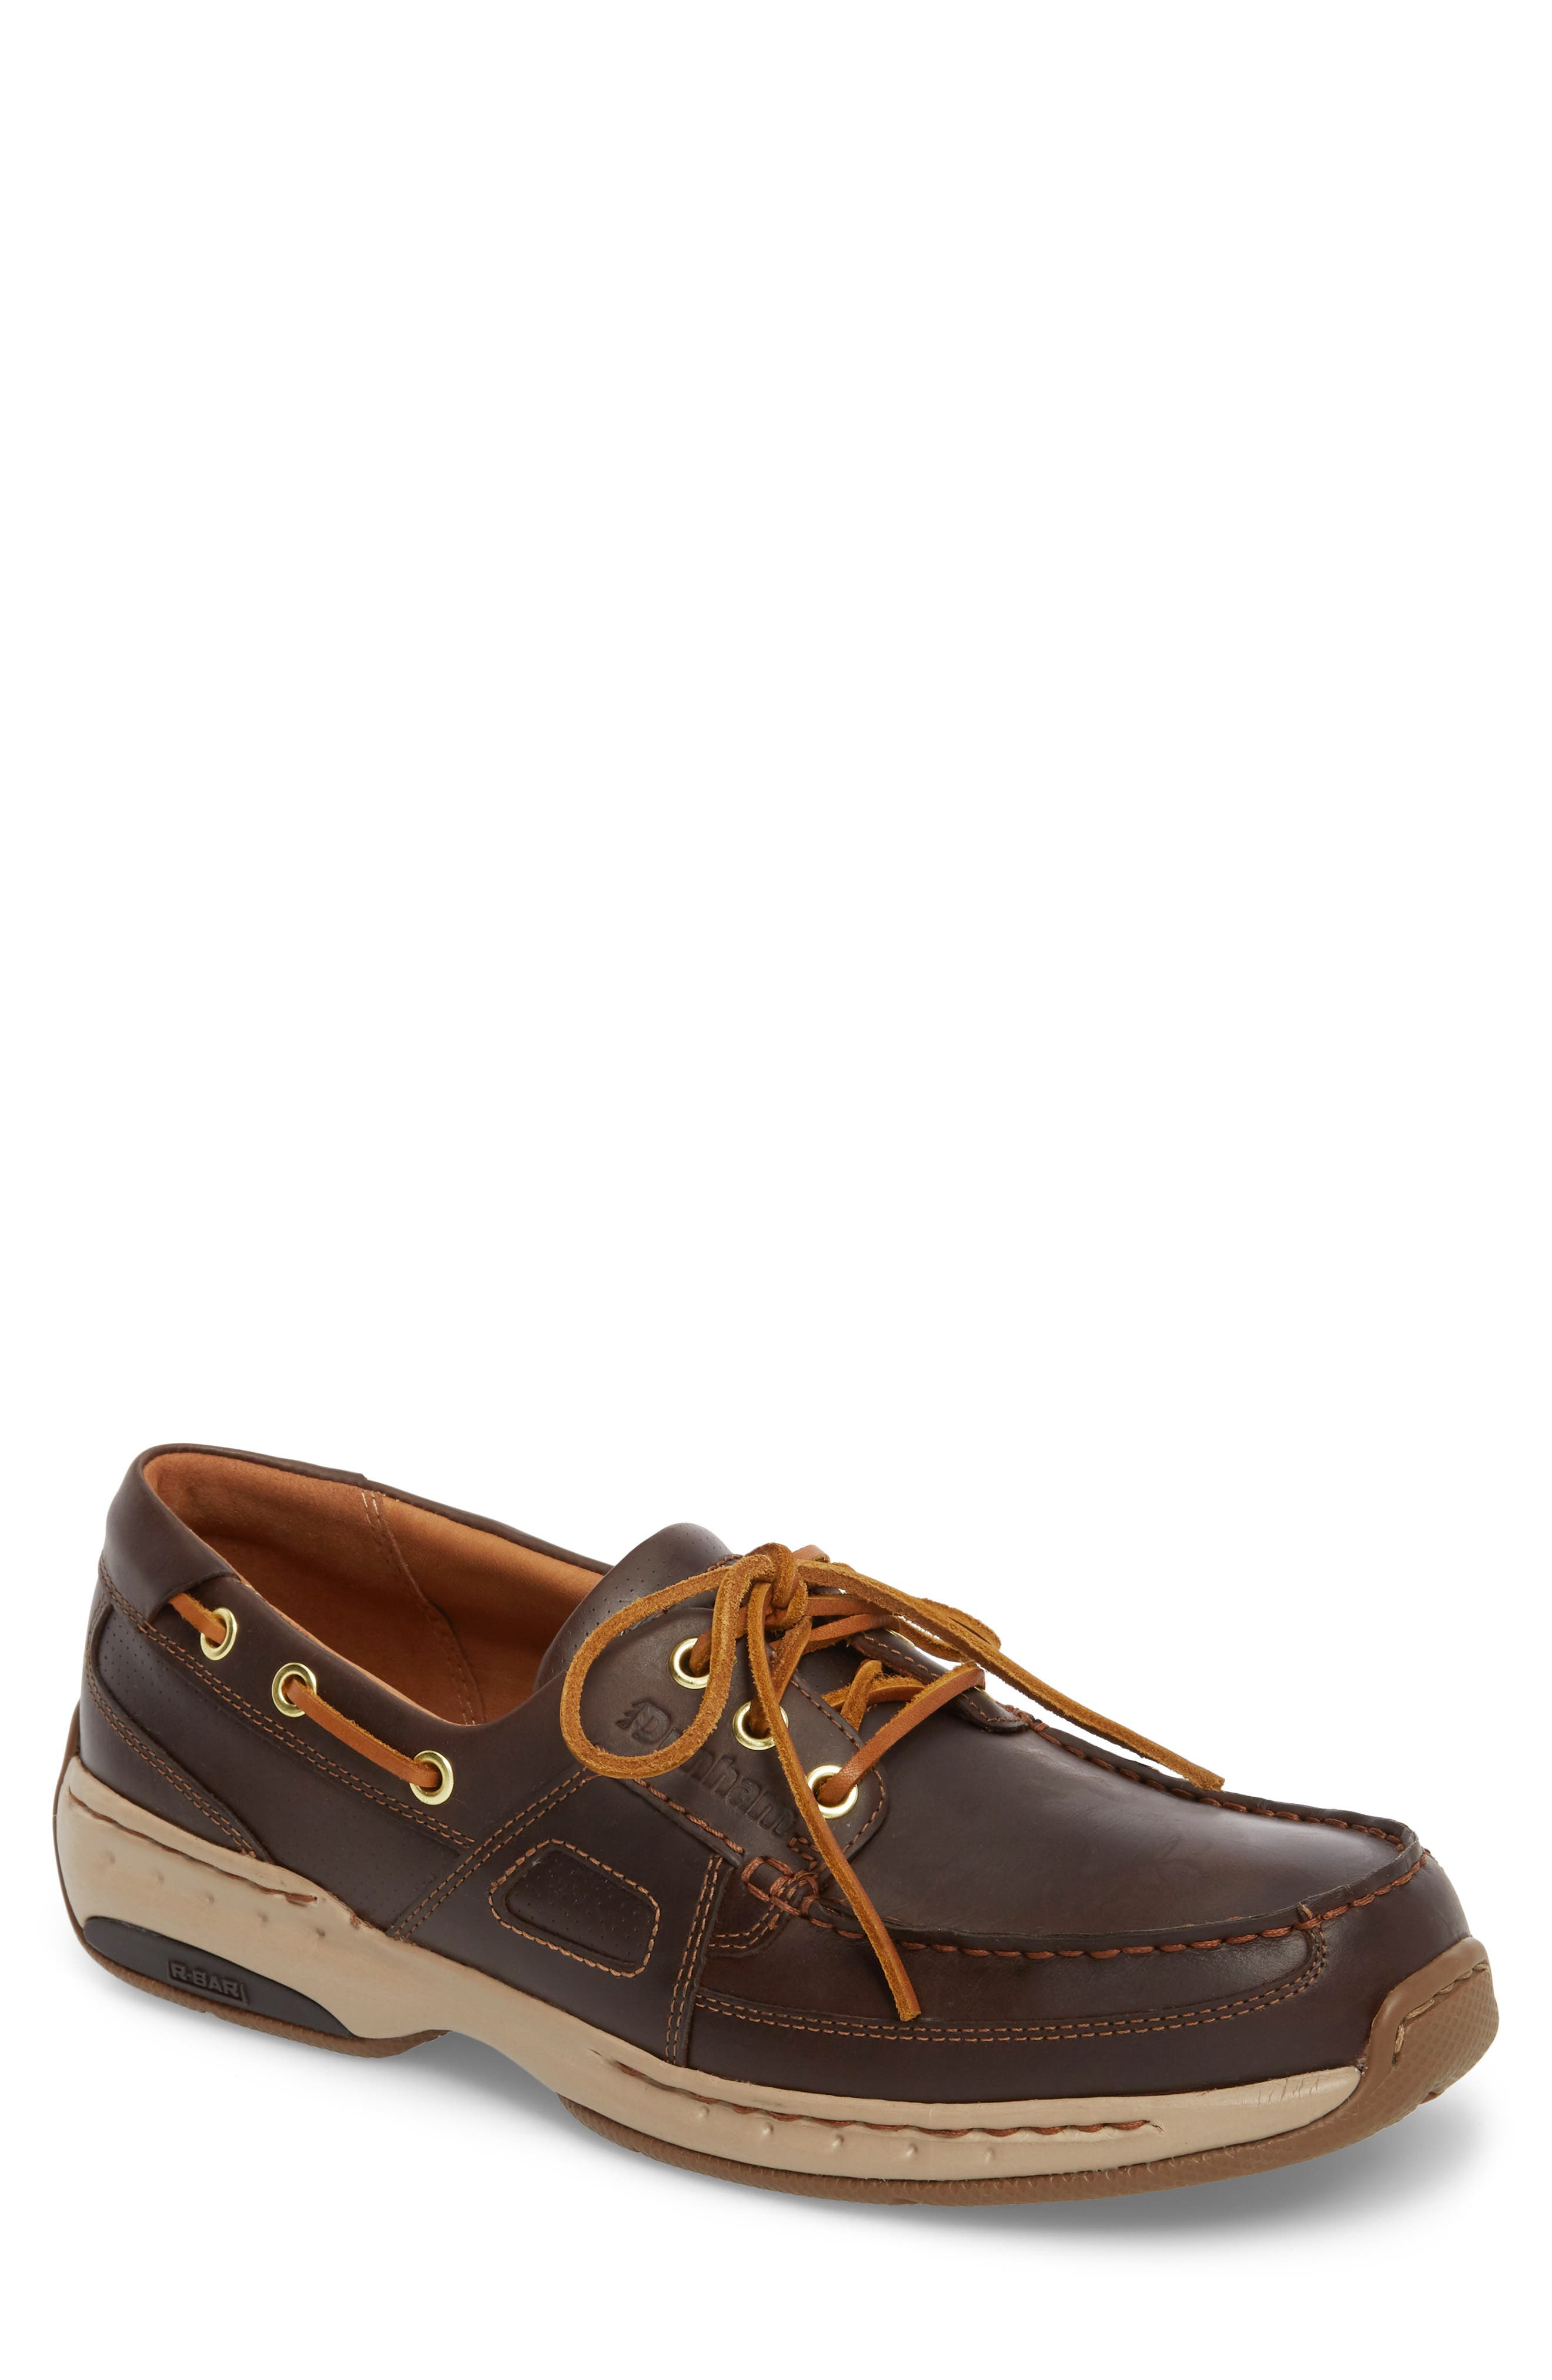 Dunham LTD Water Resistant Boat Shoe (Men)